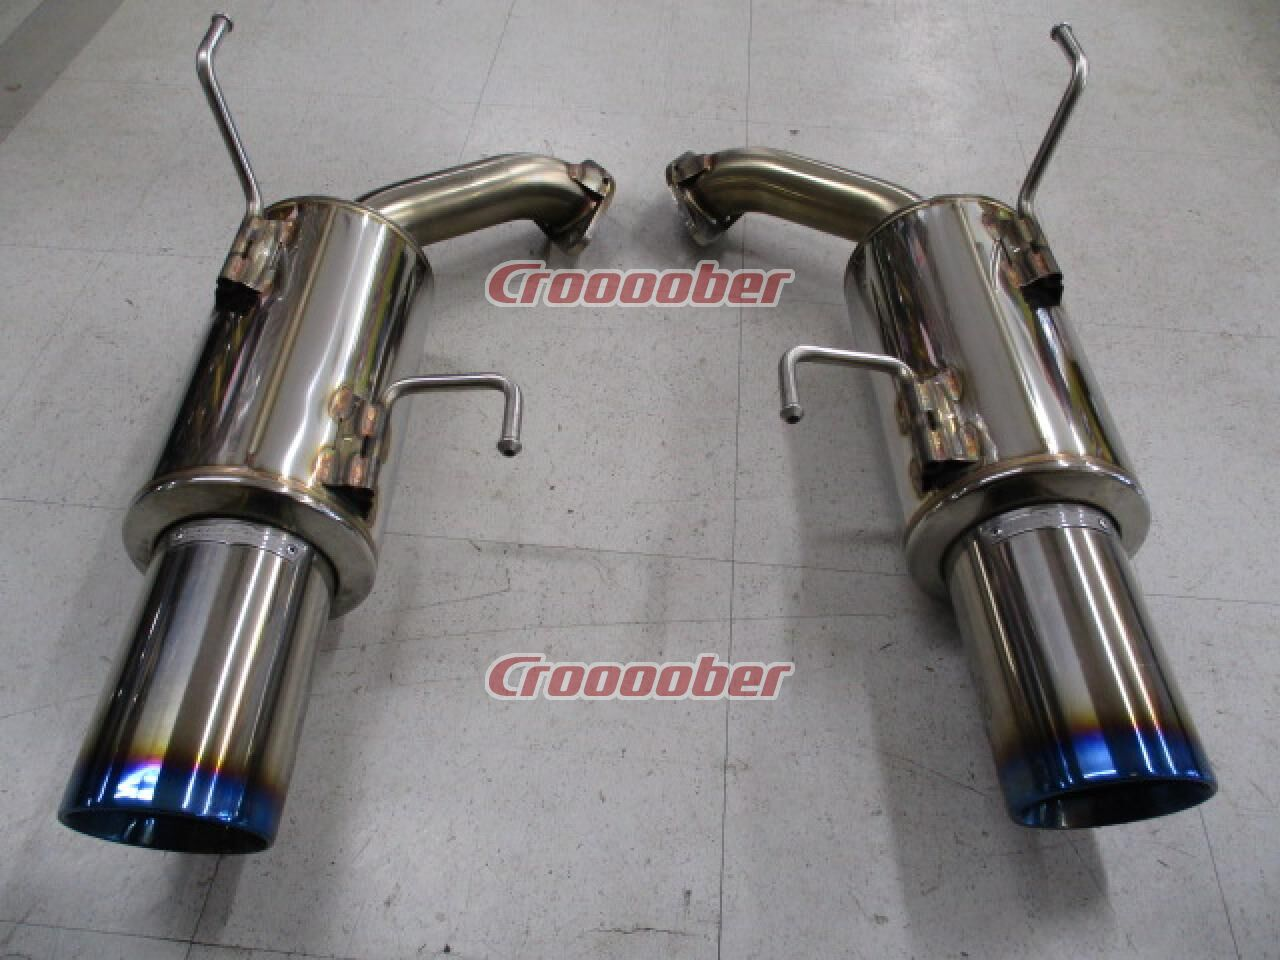 GANADOR Ganadoru Vertex Sports VRE-040 Stainless Steel / Tail Only Titanium  Coloring | Exhaust Systems | Croooober